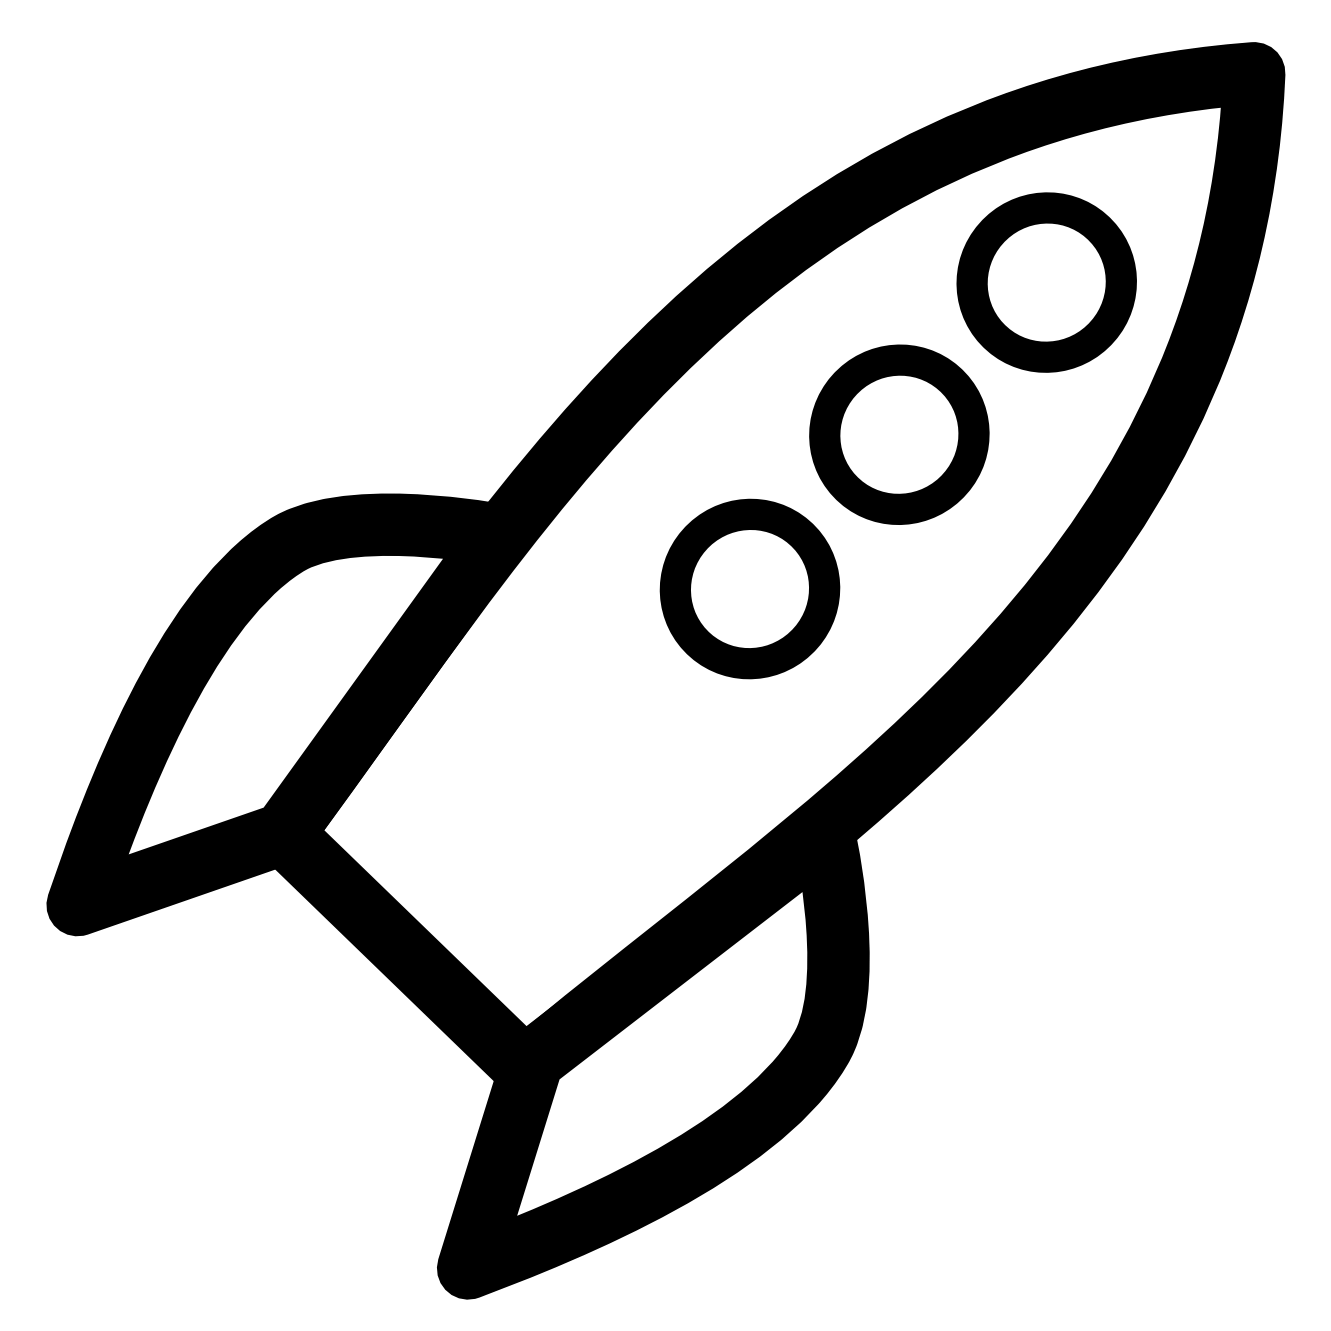 Rocket Clip Art Free Free Clipart Images